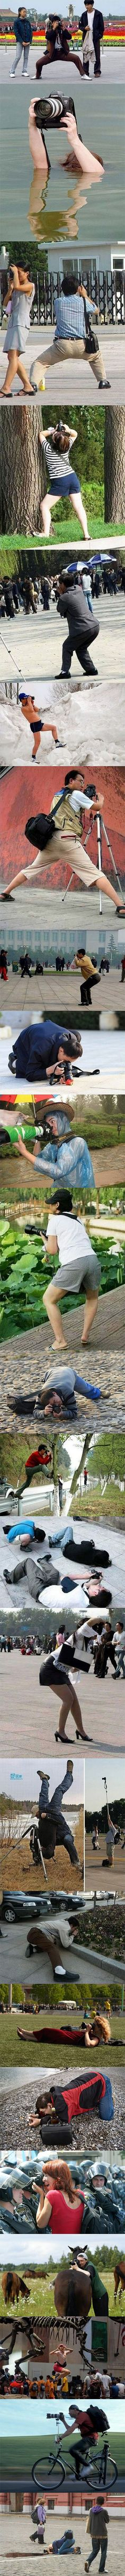 To get the perfect shot, it's not unusual to see photographers get in awkward positions, but sometimes, things can get a bit too weird.